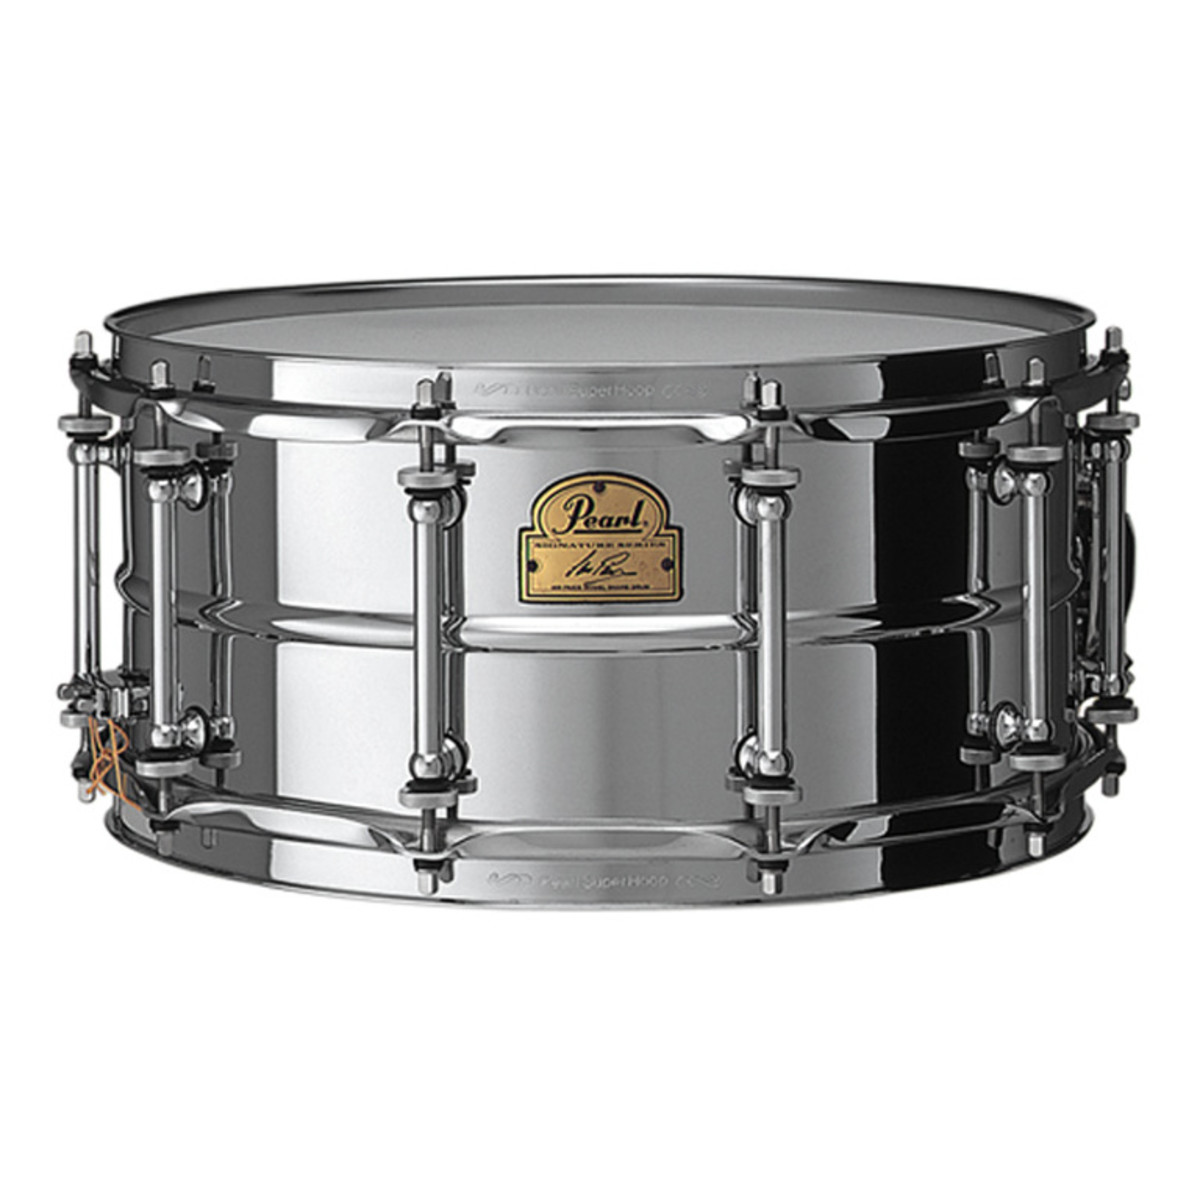 snare drums pearl ian paice signature snare drum. Black Bedroom Furniture Sets. Home Design Ideas